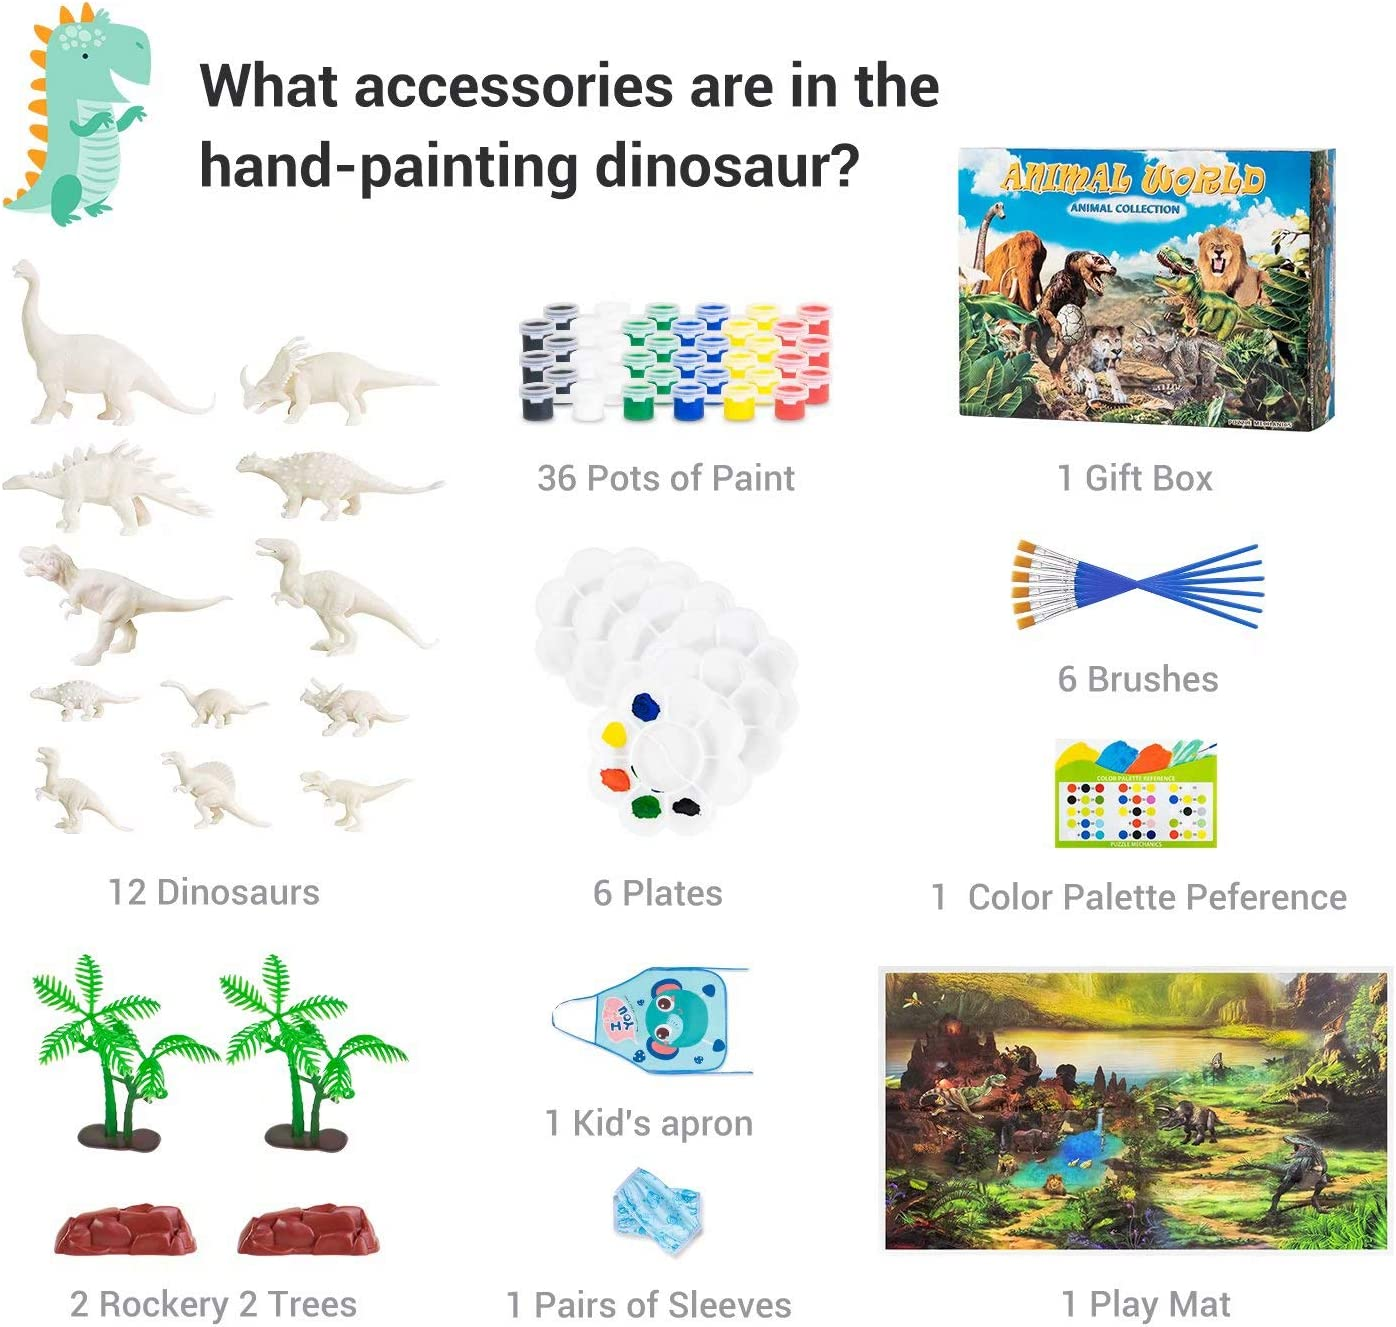 Kids Dinosaur Painting Kits 70pcs DIY Dinosaur Toys Art and Craft with Kids Apron Decorate Your Own Dinosaur Figurines 3D Drawing for Boys Girls Ages 3-12 Play Mat